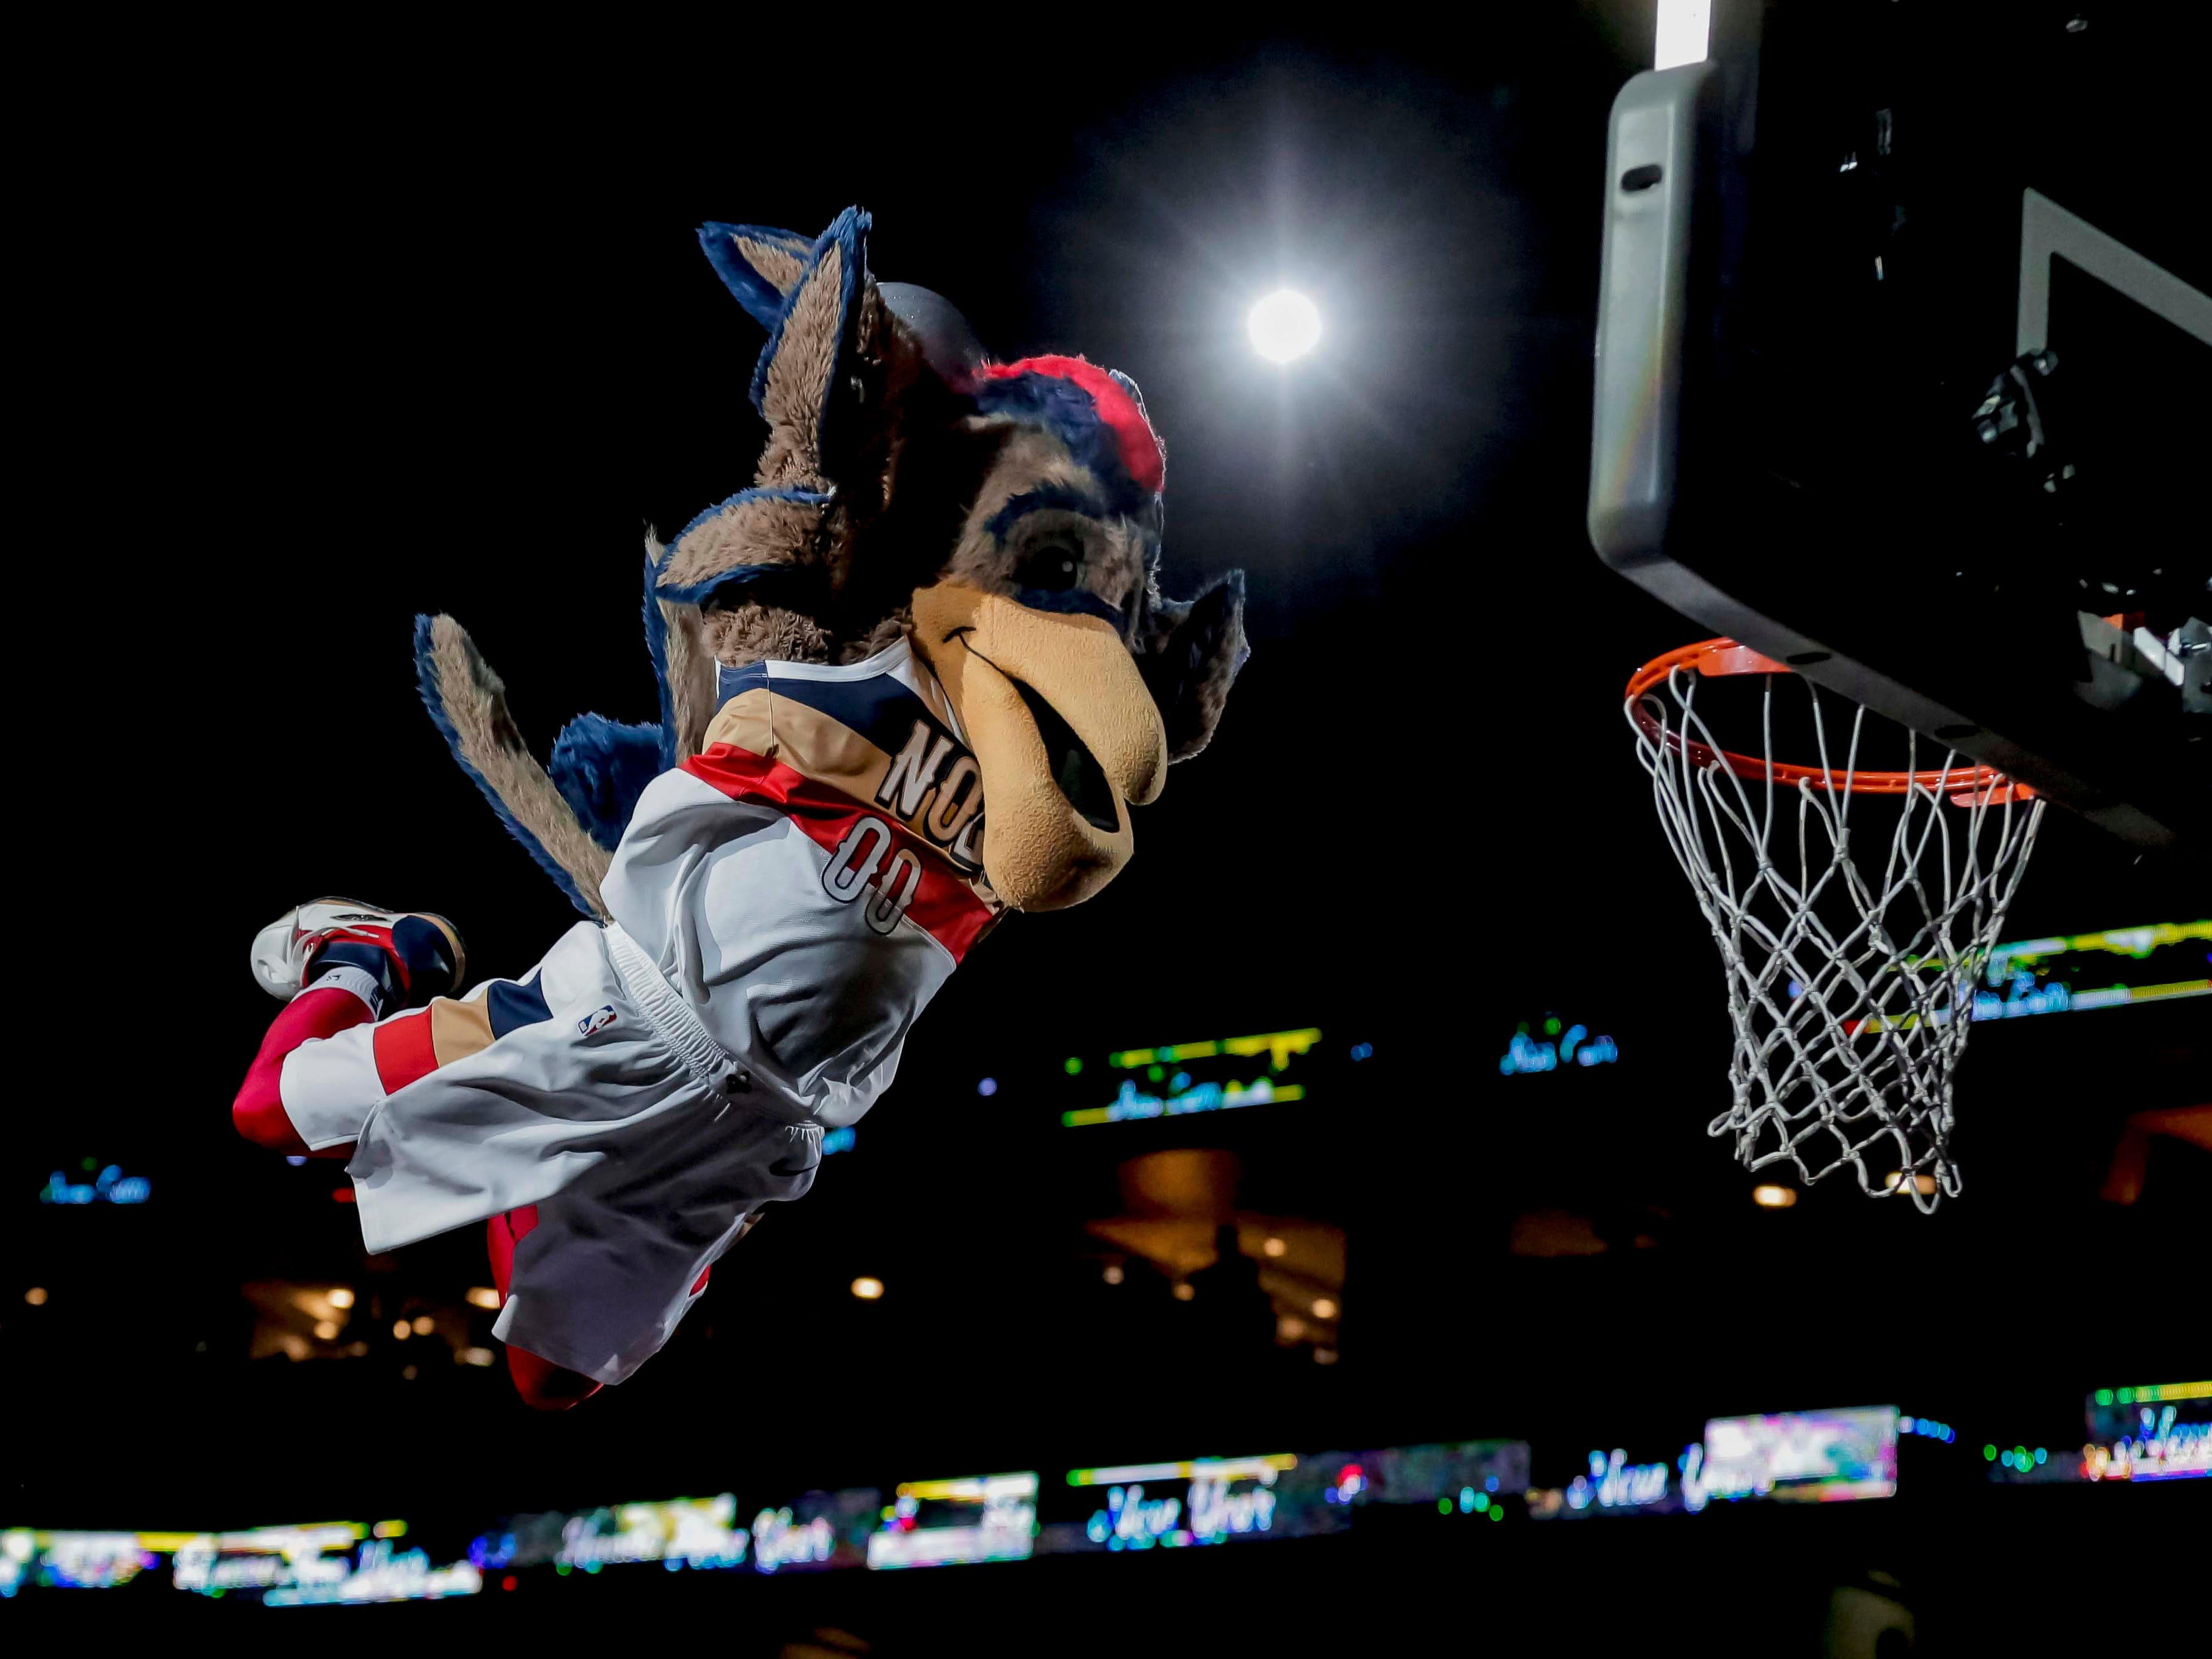 Dec. 31: New Orleans Pelicans mascot Pierre the Pelican performs a dunk during a timeout against the Minnesota Timberwolves at the Smoothie King Center.